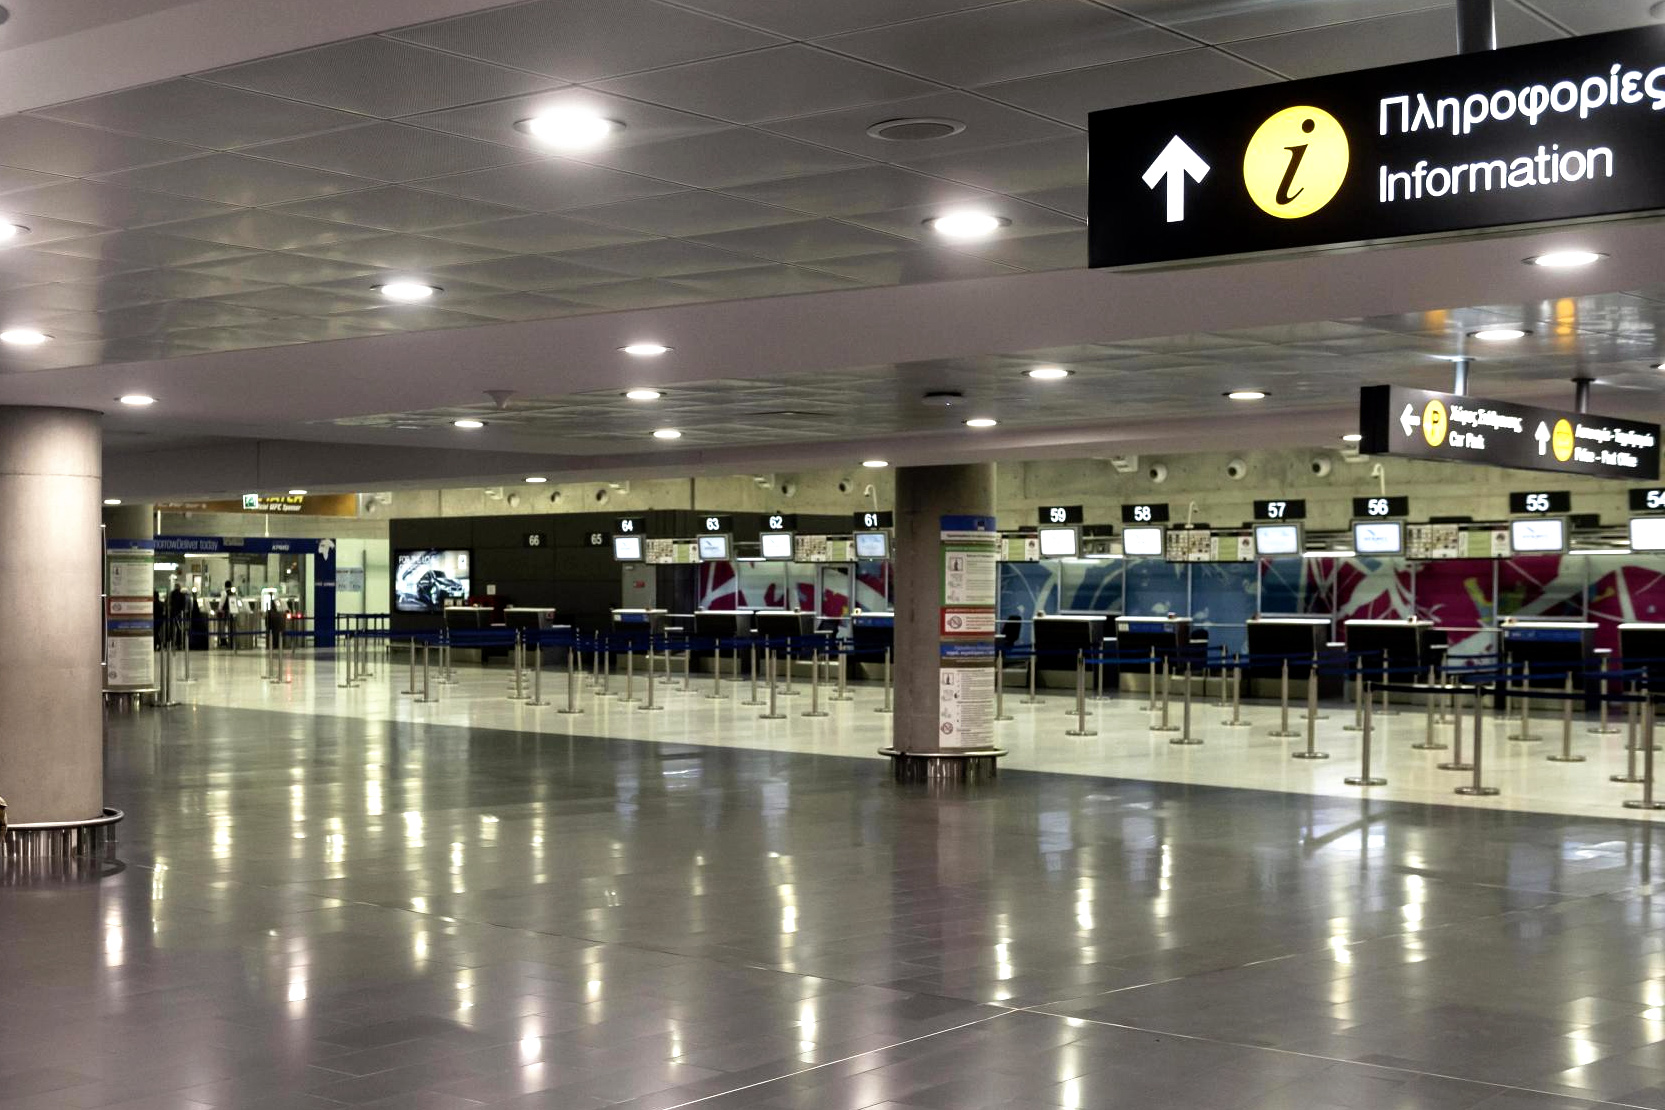 Arrivals in Cyprus plummet in 2020 due to Covid-19